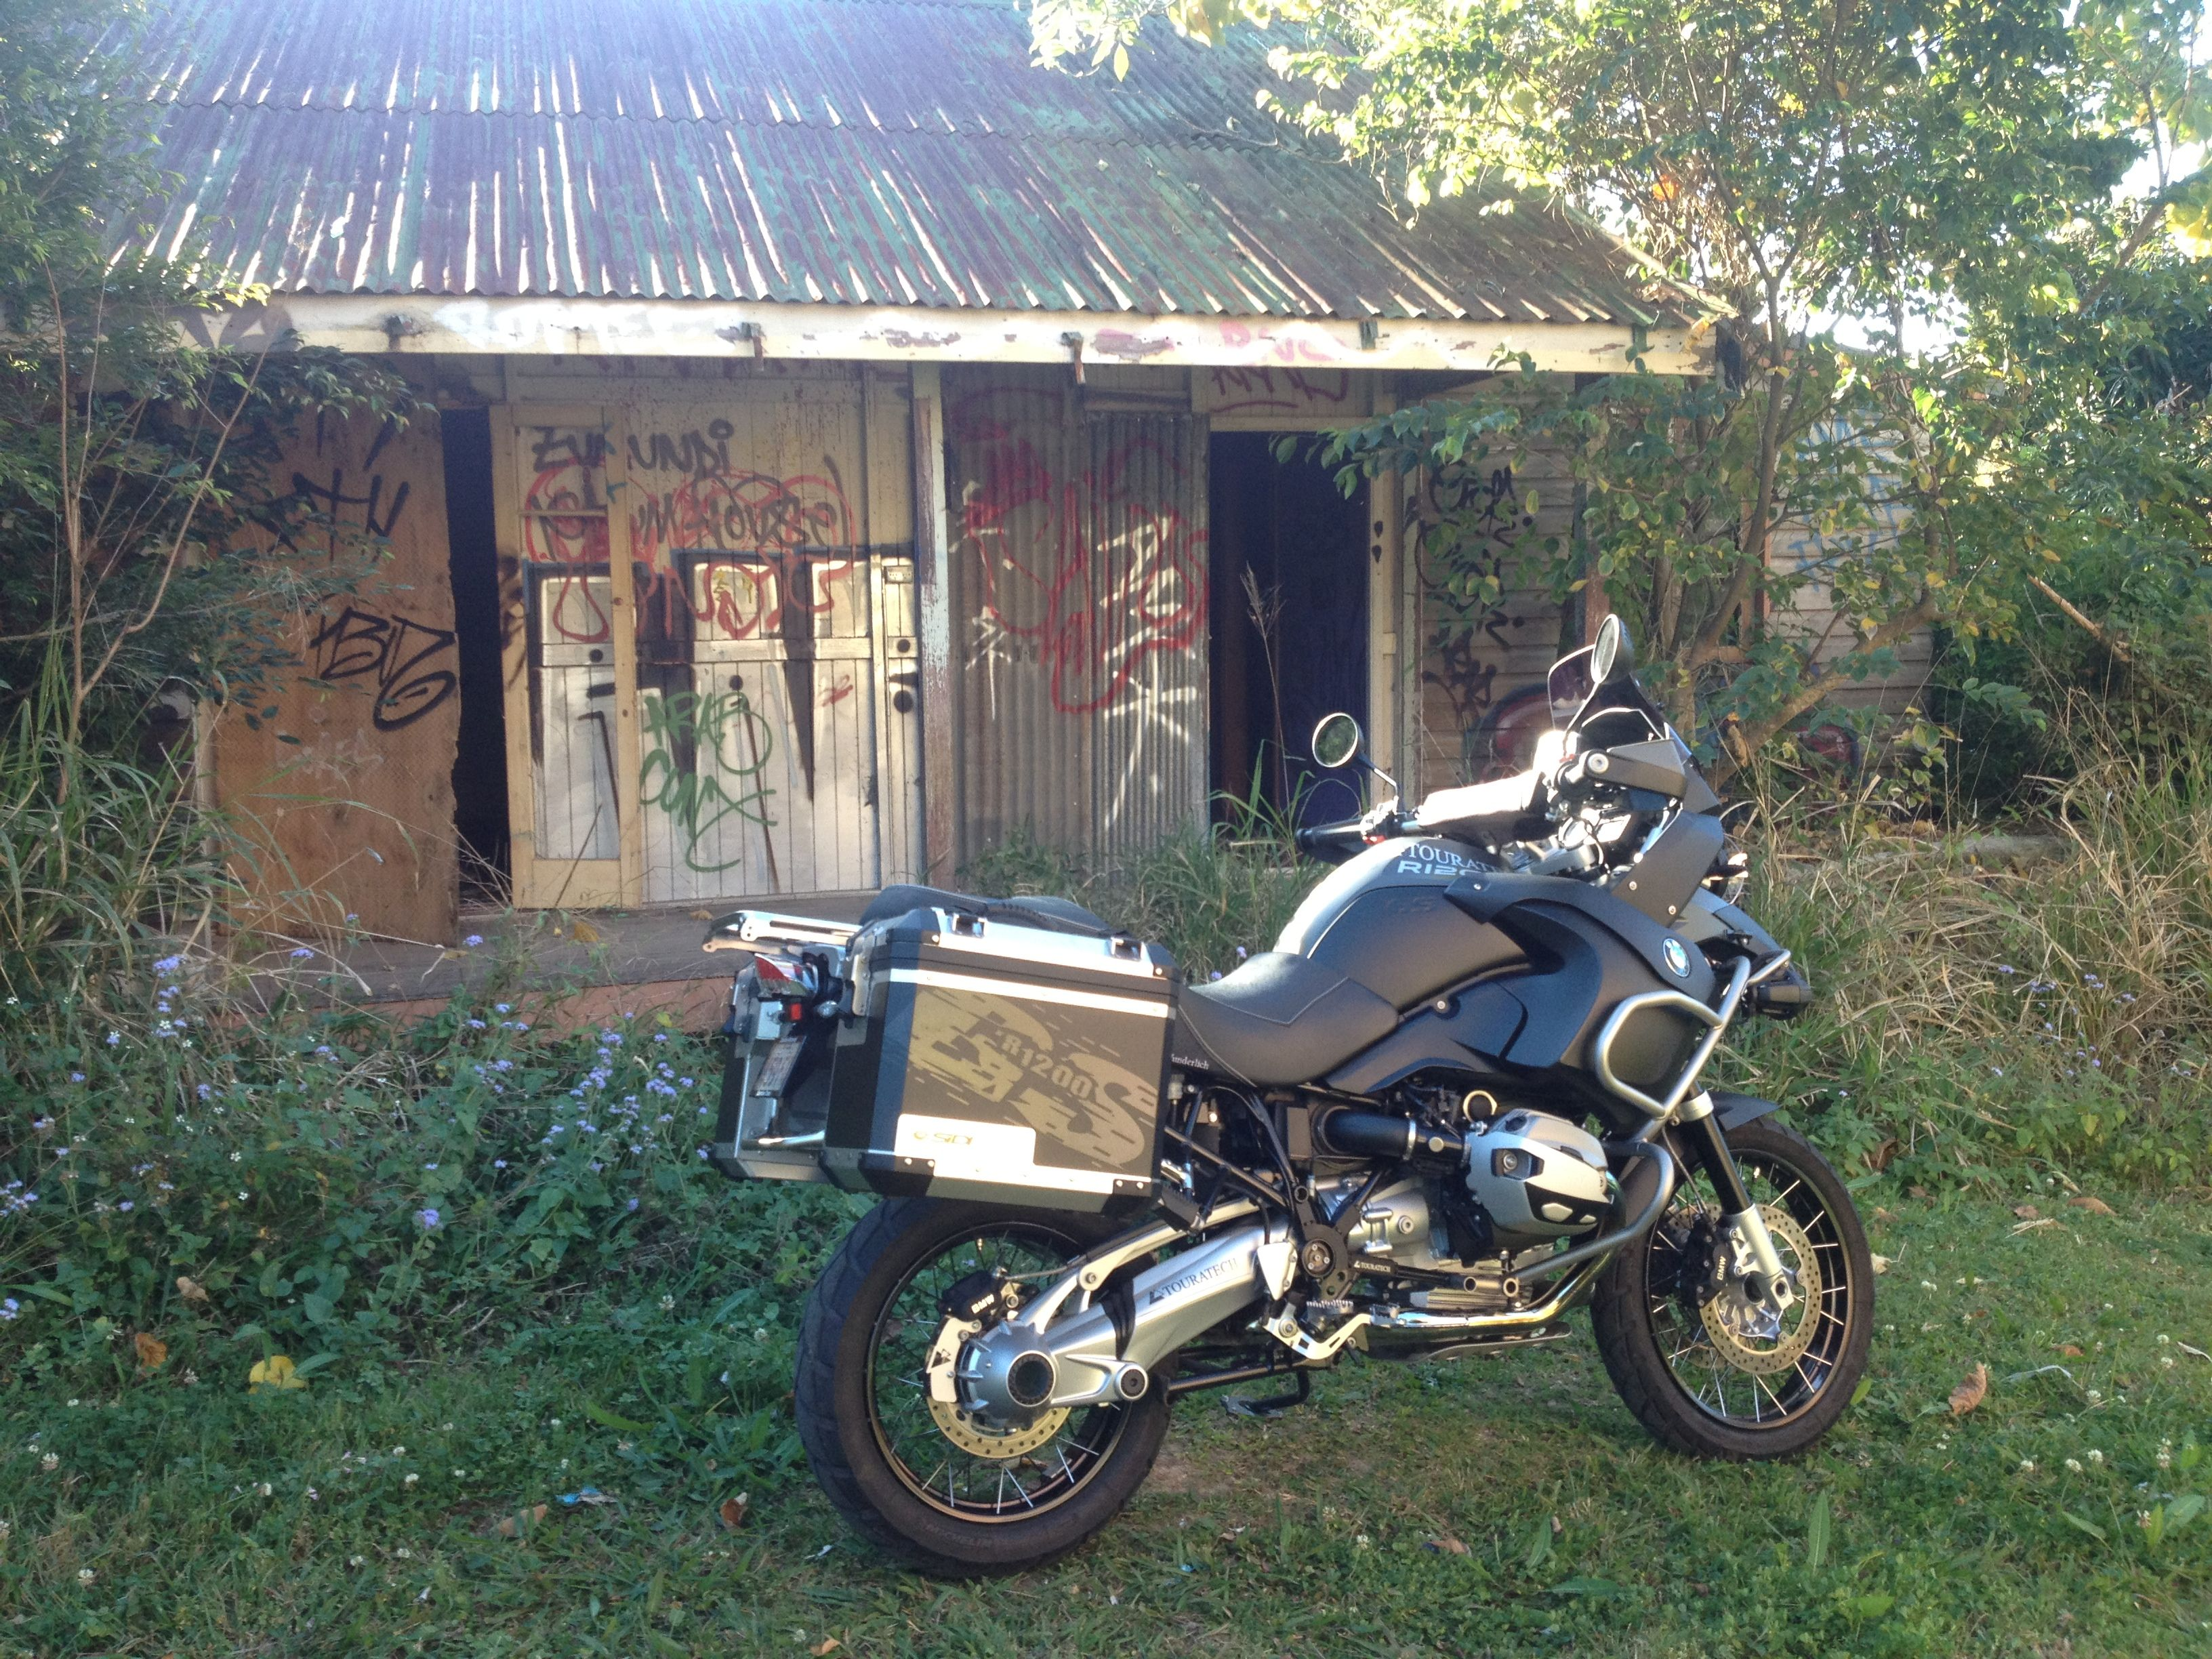 R1200GS Adventure - Vinyl wrap for you're motorcycle | Bike